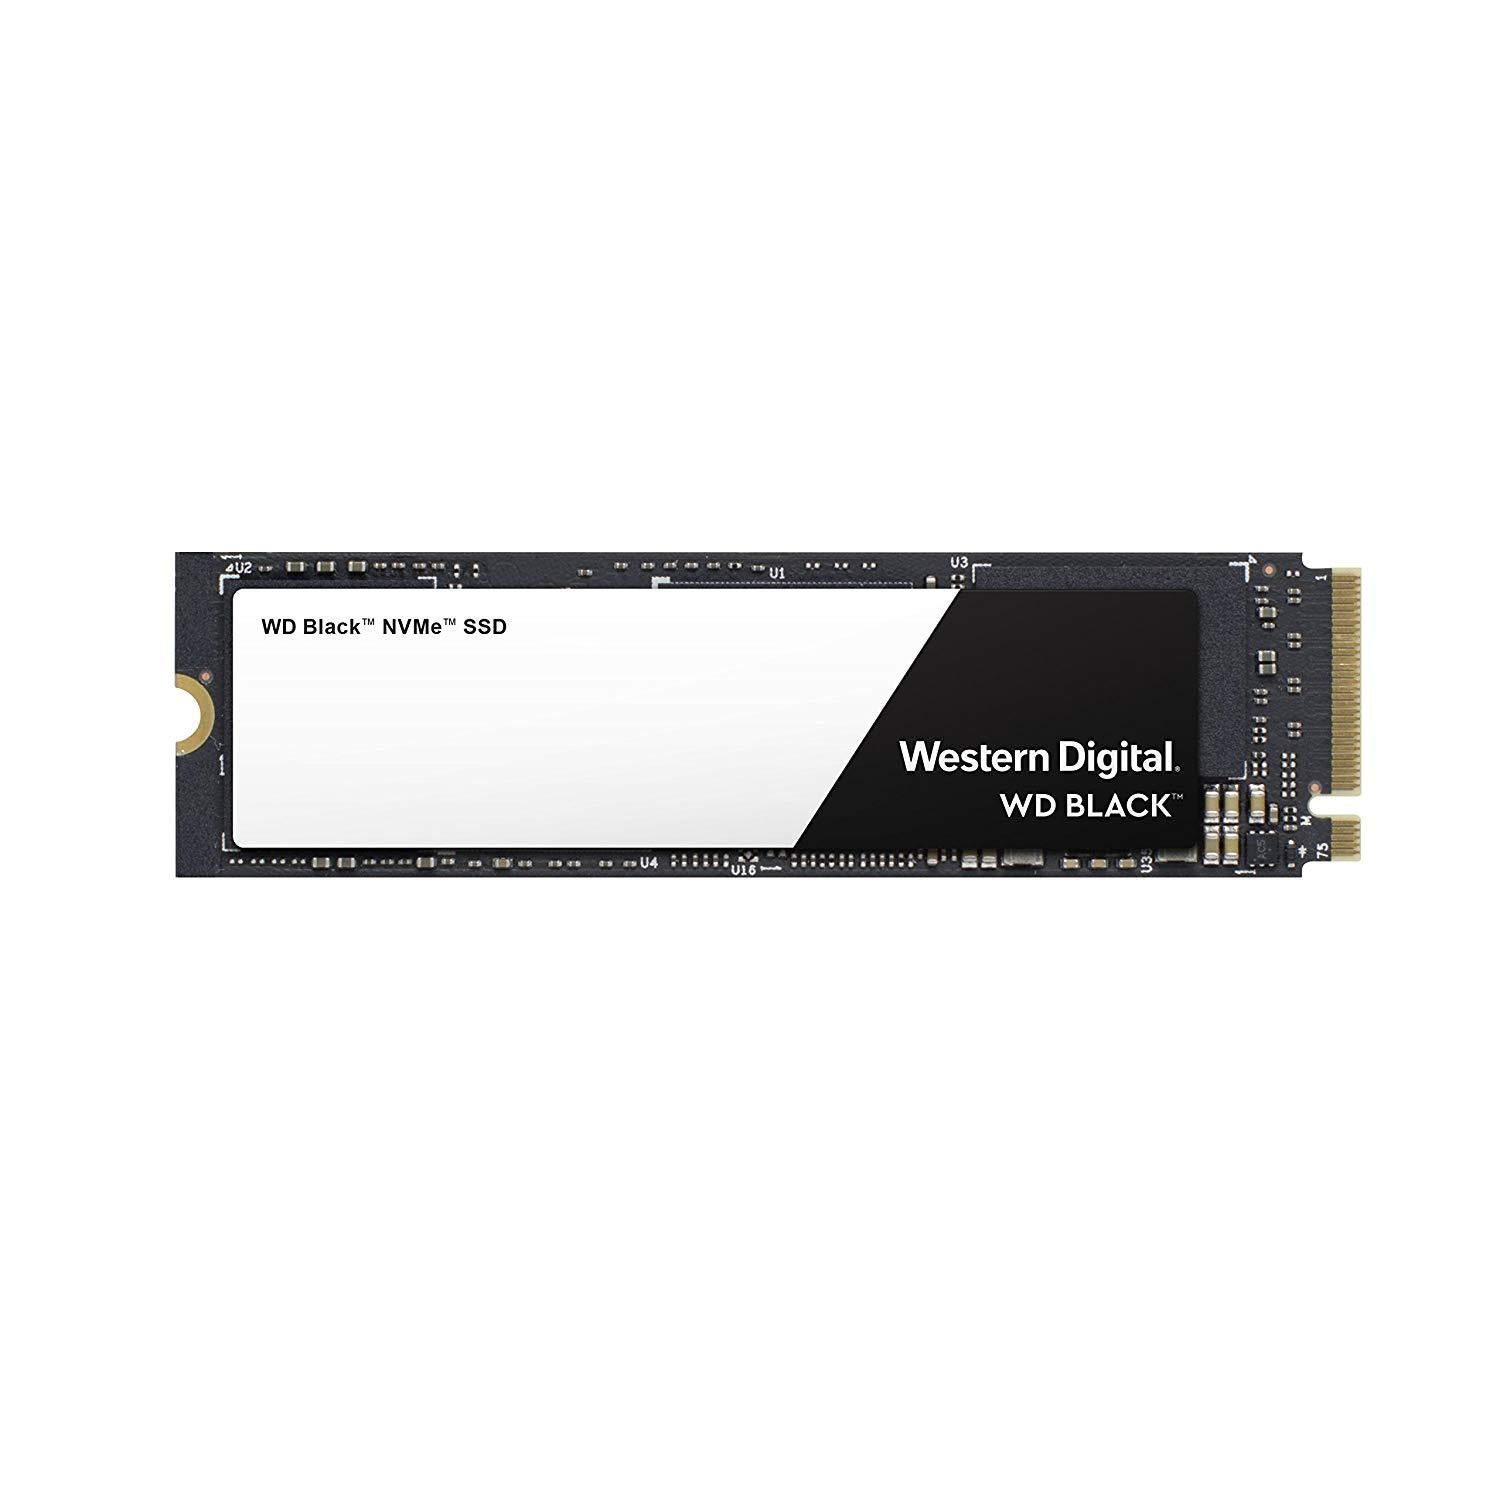 Western Digital WD Black 512GB Internal PCI-E M.2